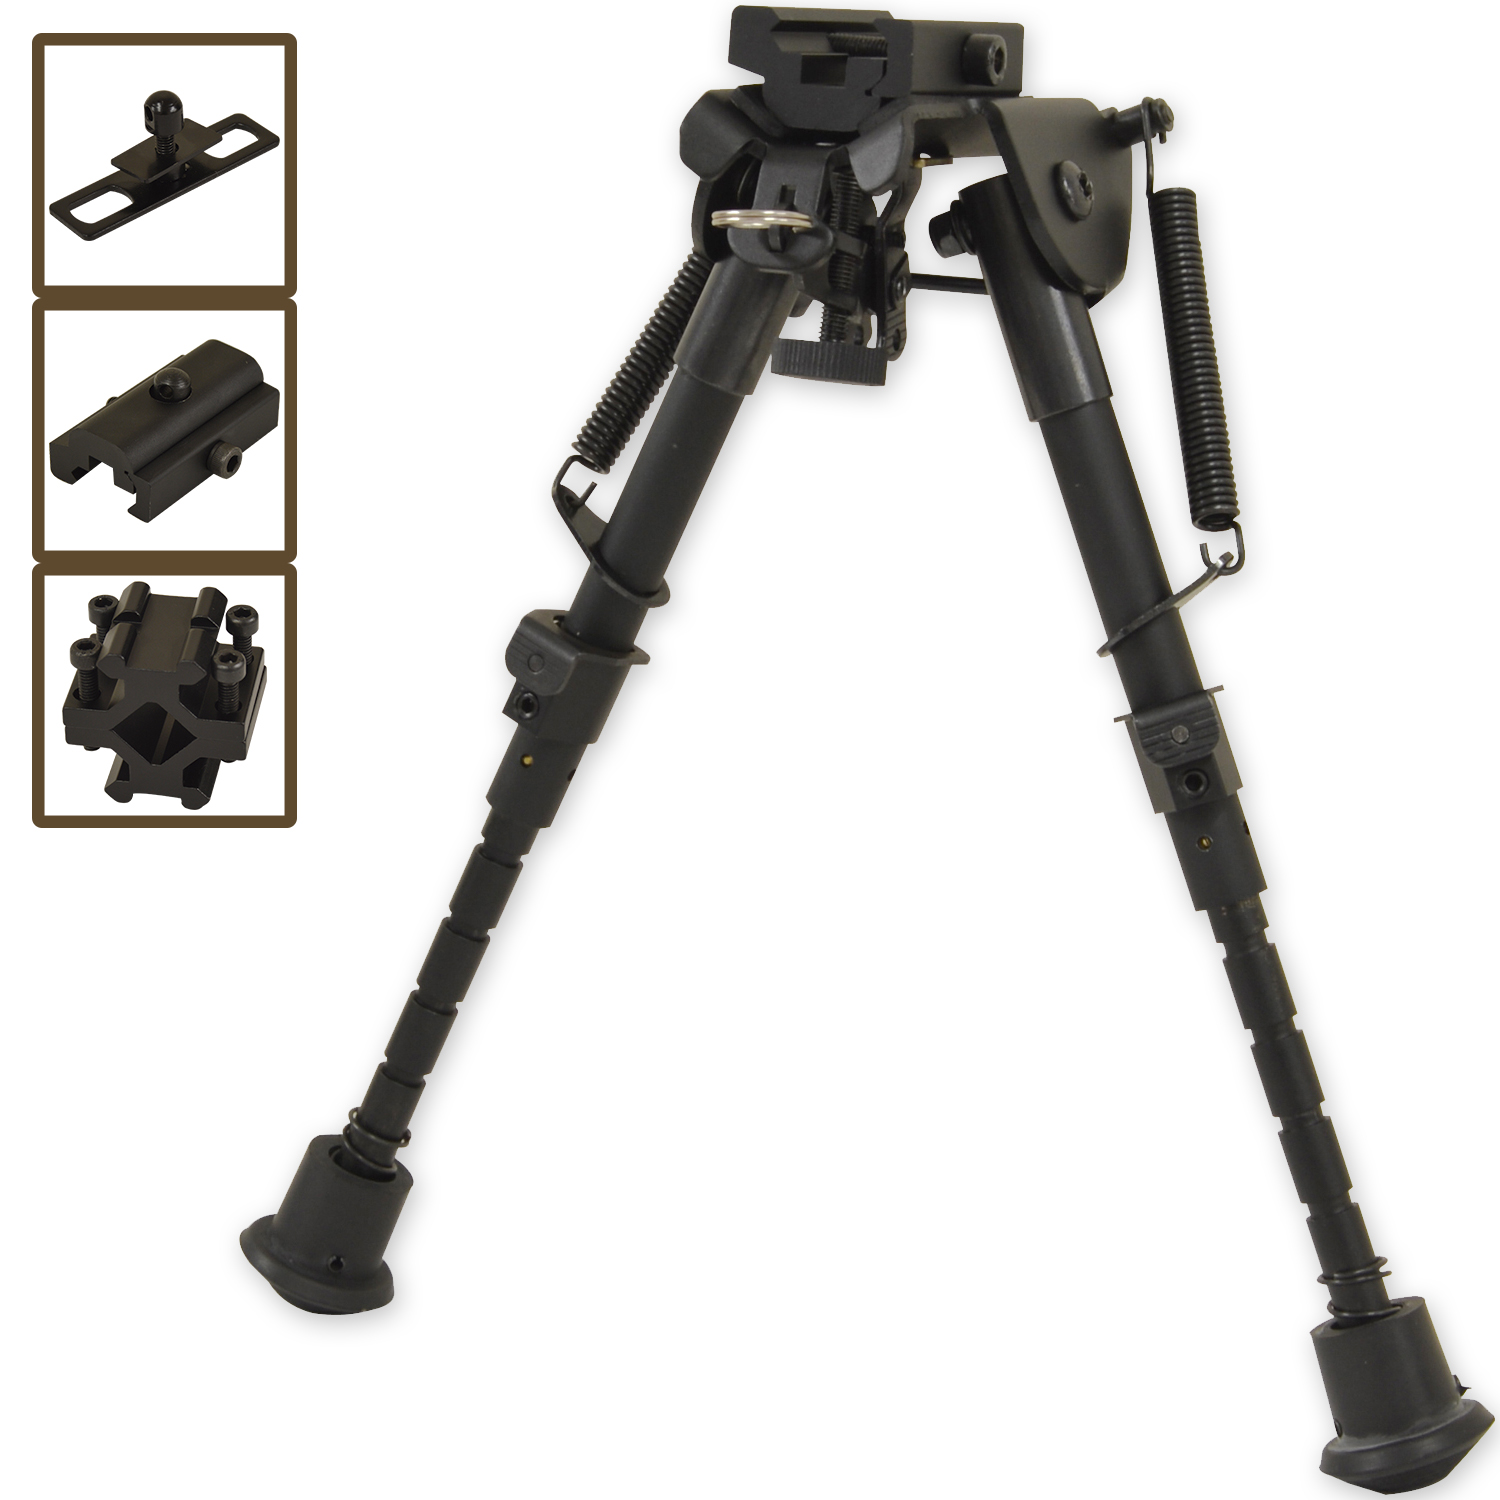 Nitehawk Air Rifle Precision Hunting Shooting Bipod Adjustable Swivel Gun Rest | eBay